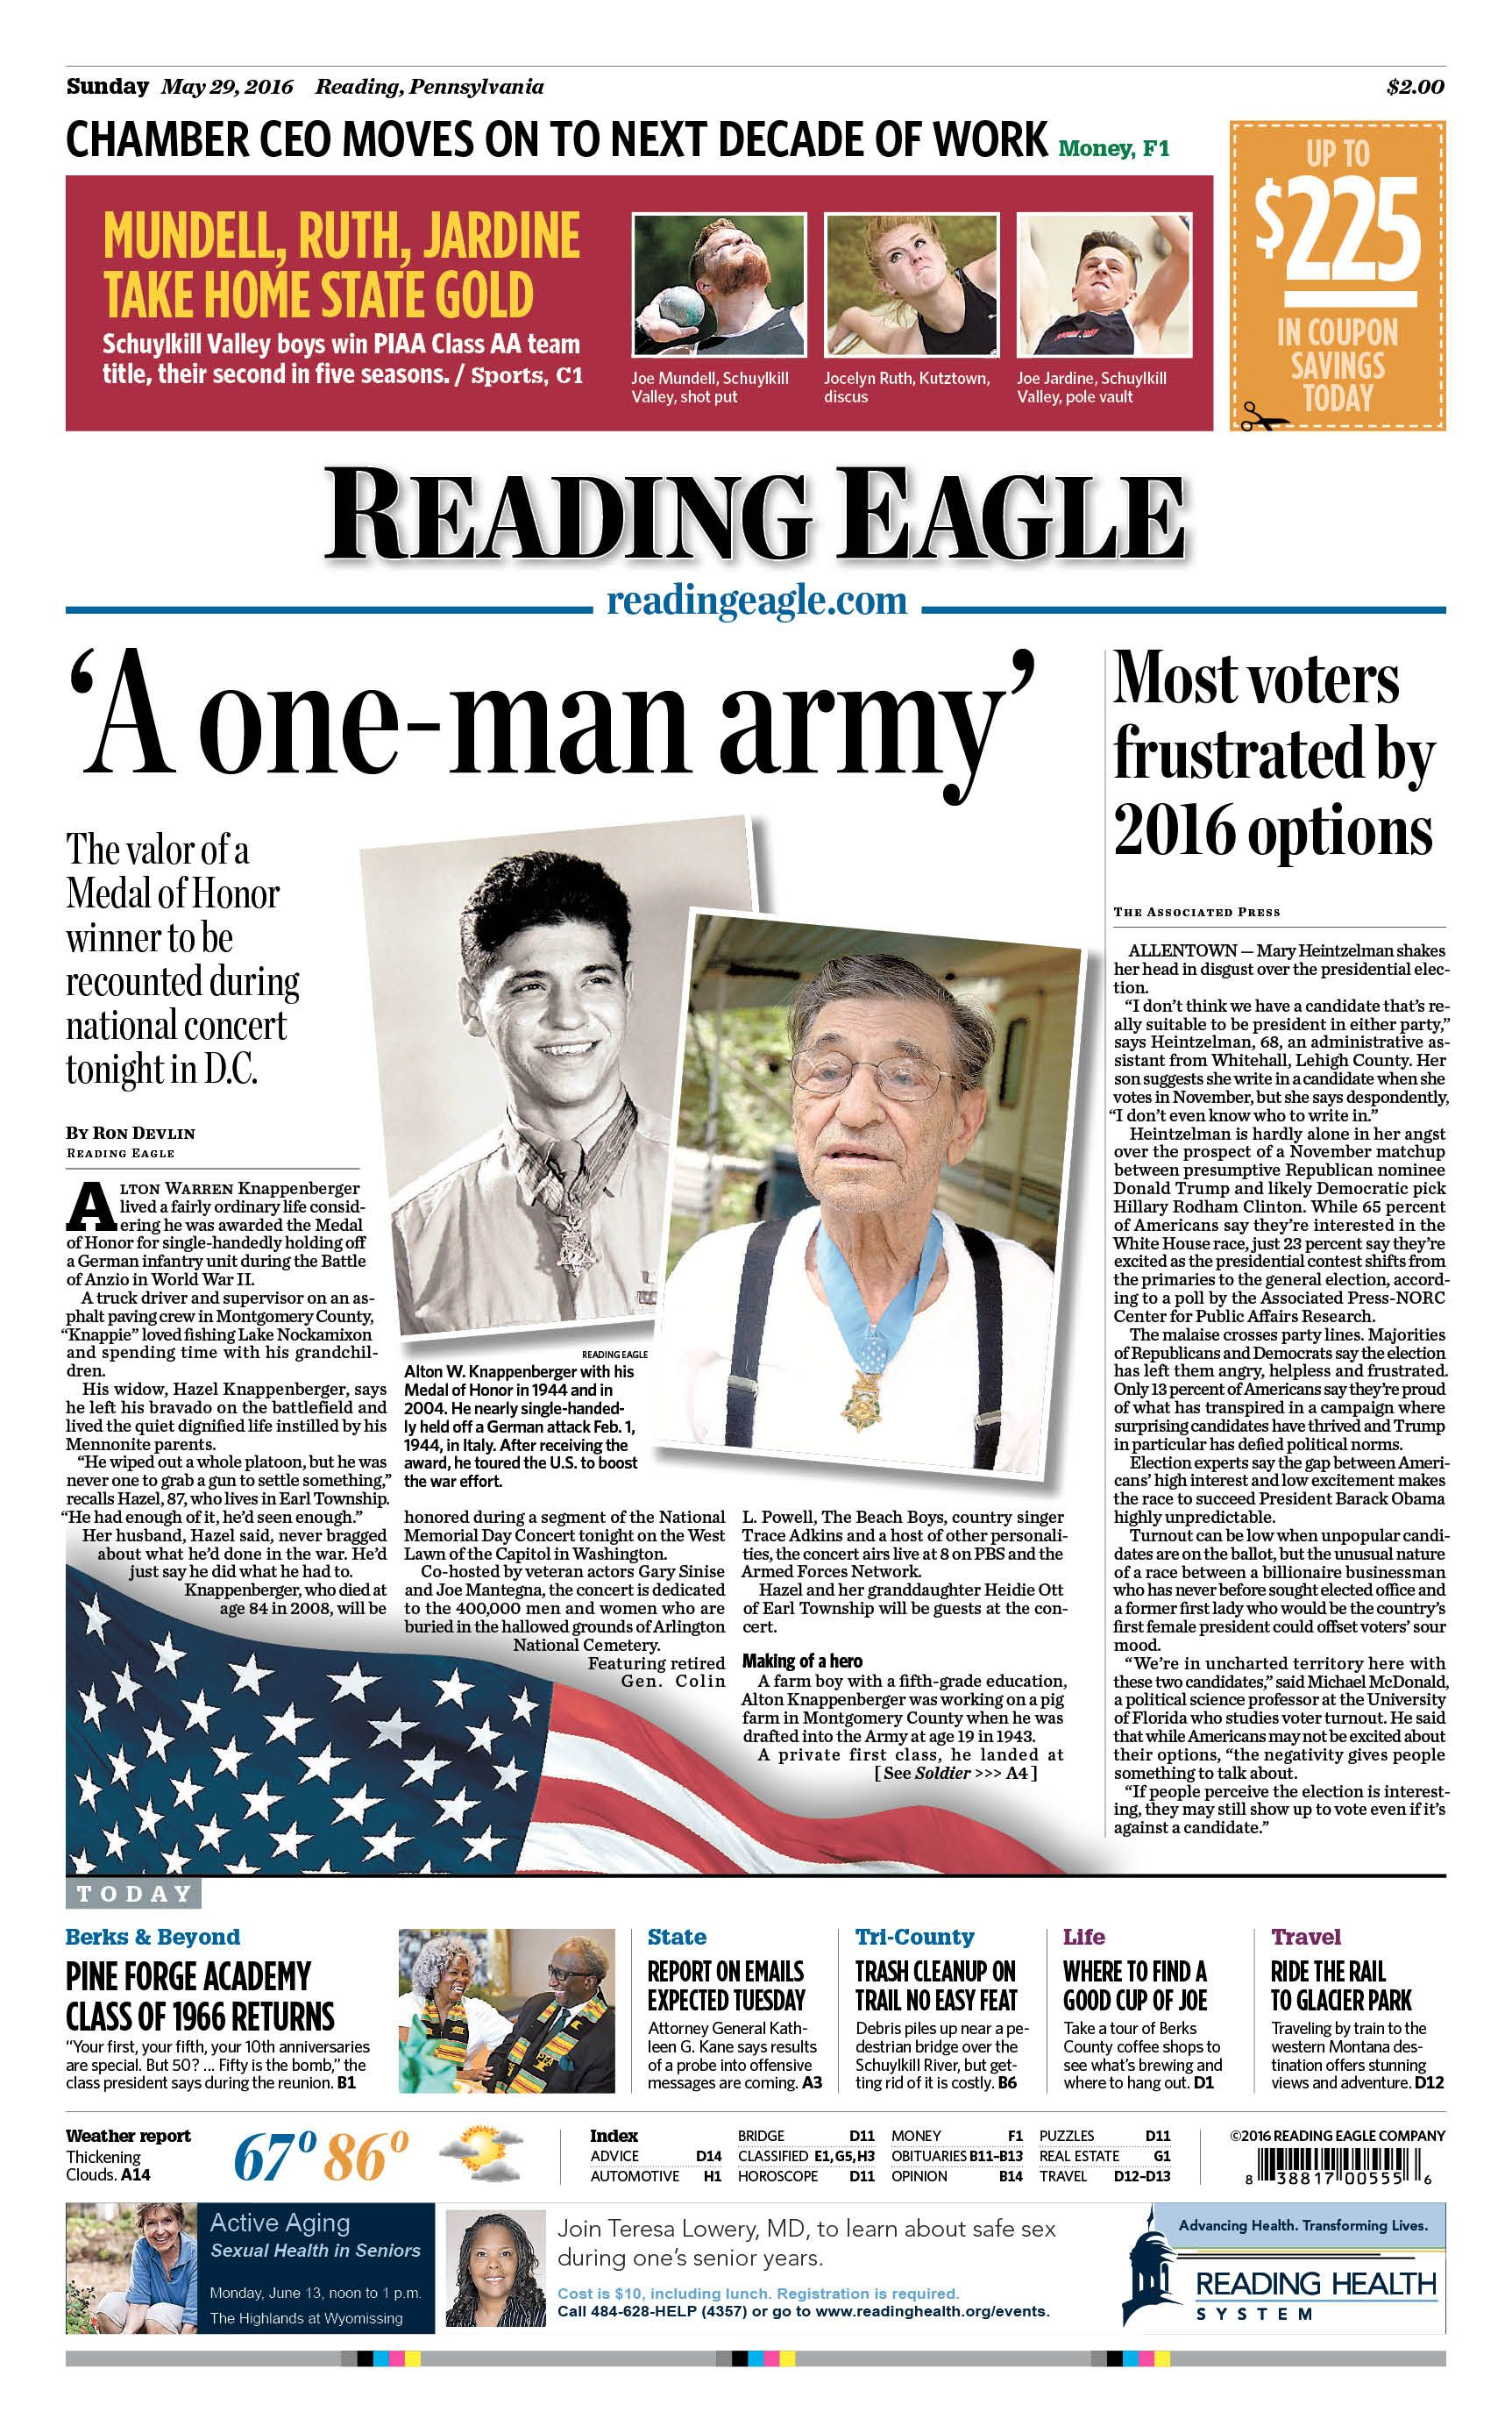 Today's front page, May 29, 2016